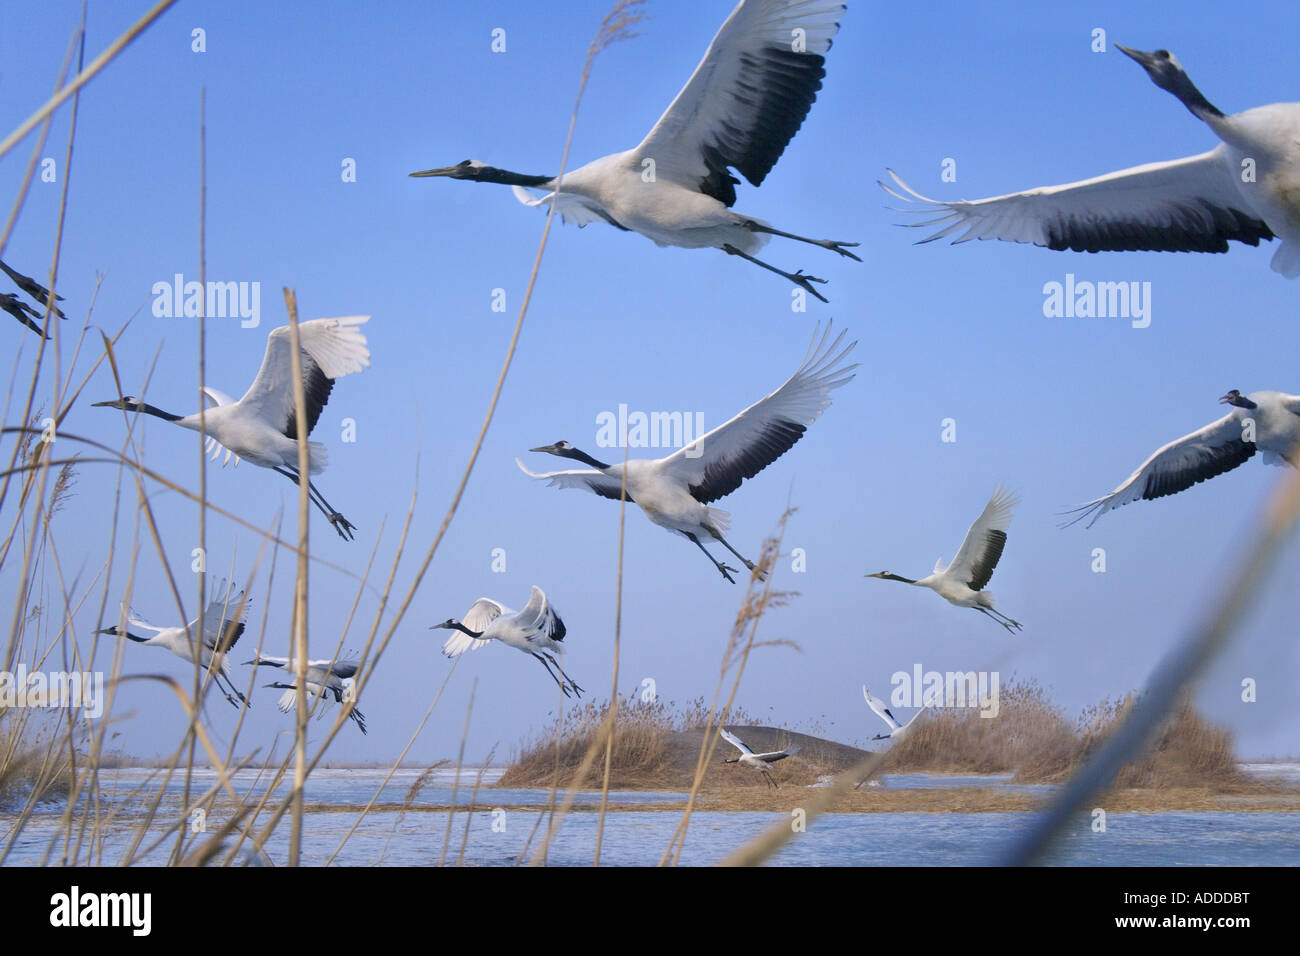 Red-Crowned cranes Heilongjiang Province China - Stock Image